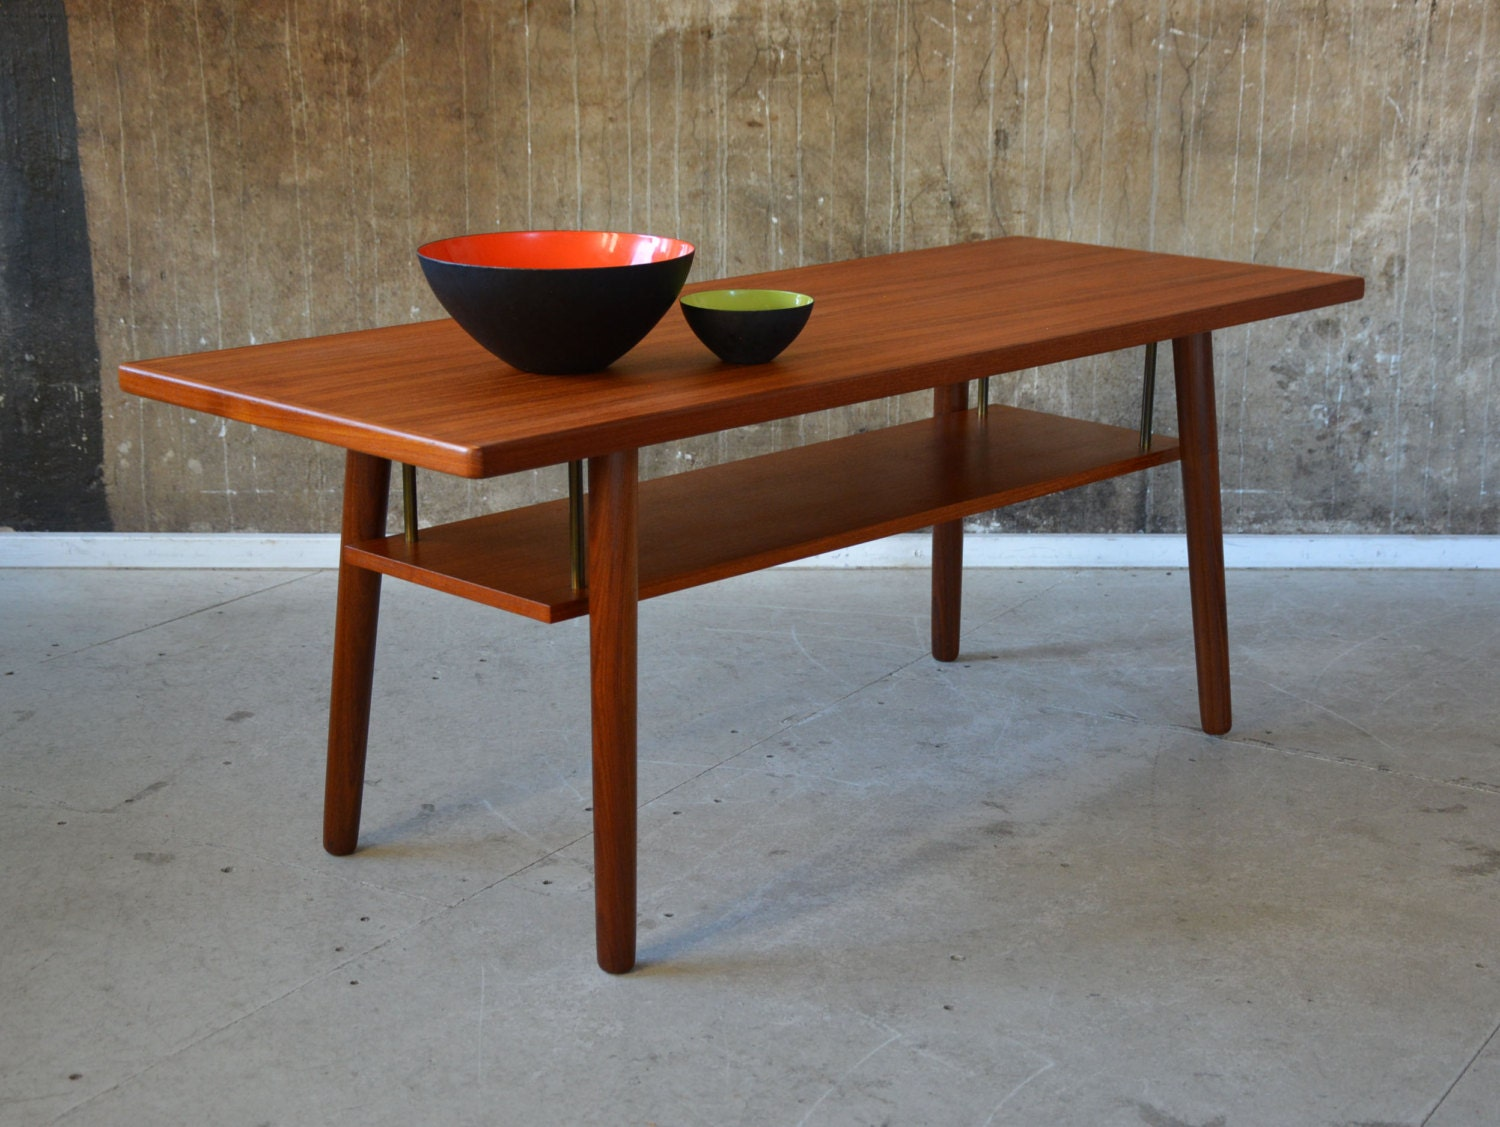 60er teak couchtisch danish design 60s coffee table sofa for Design couchtisch ring